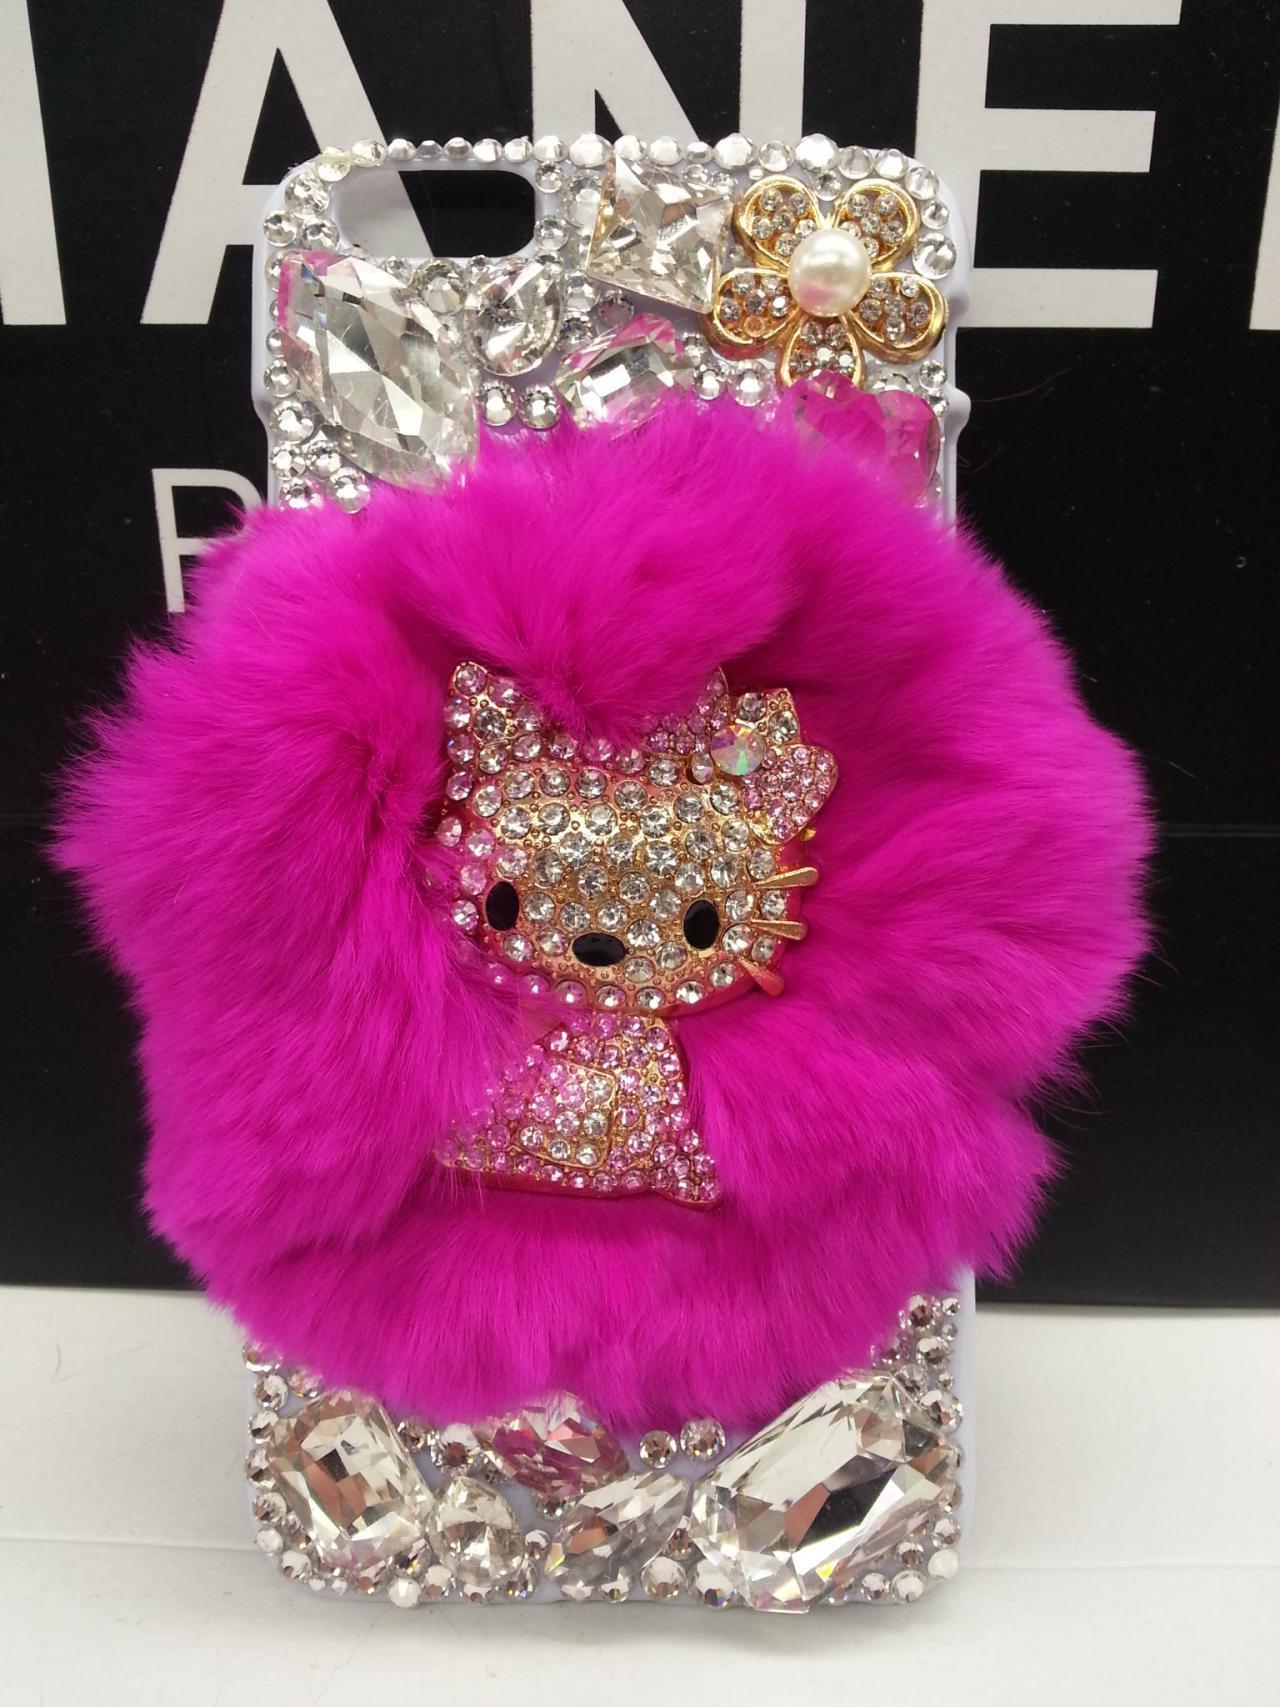 iPhone 6S Case-hellokitty kawaii phone covers-hot pink real fur swarovski  stones iPhone 550b7d683